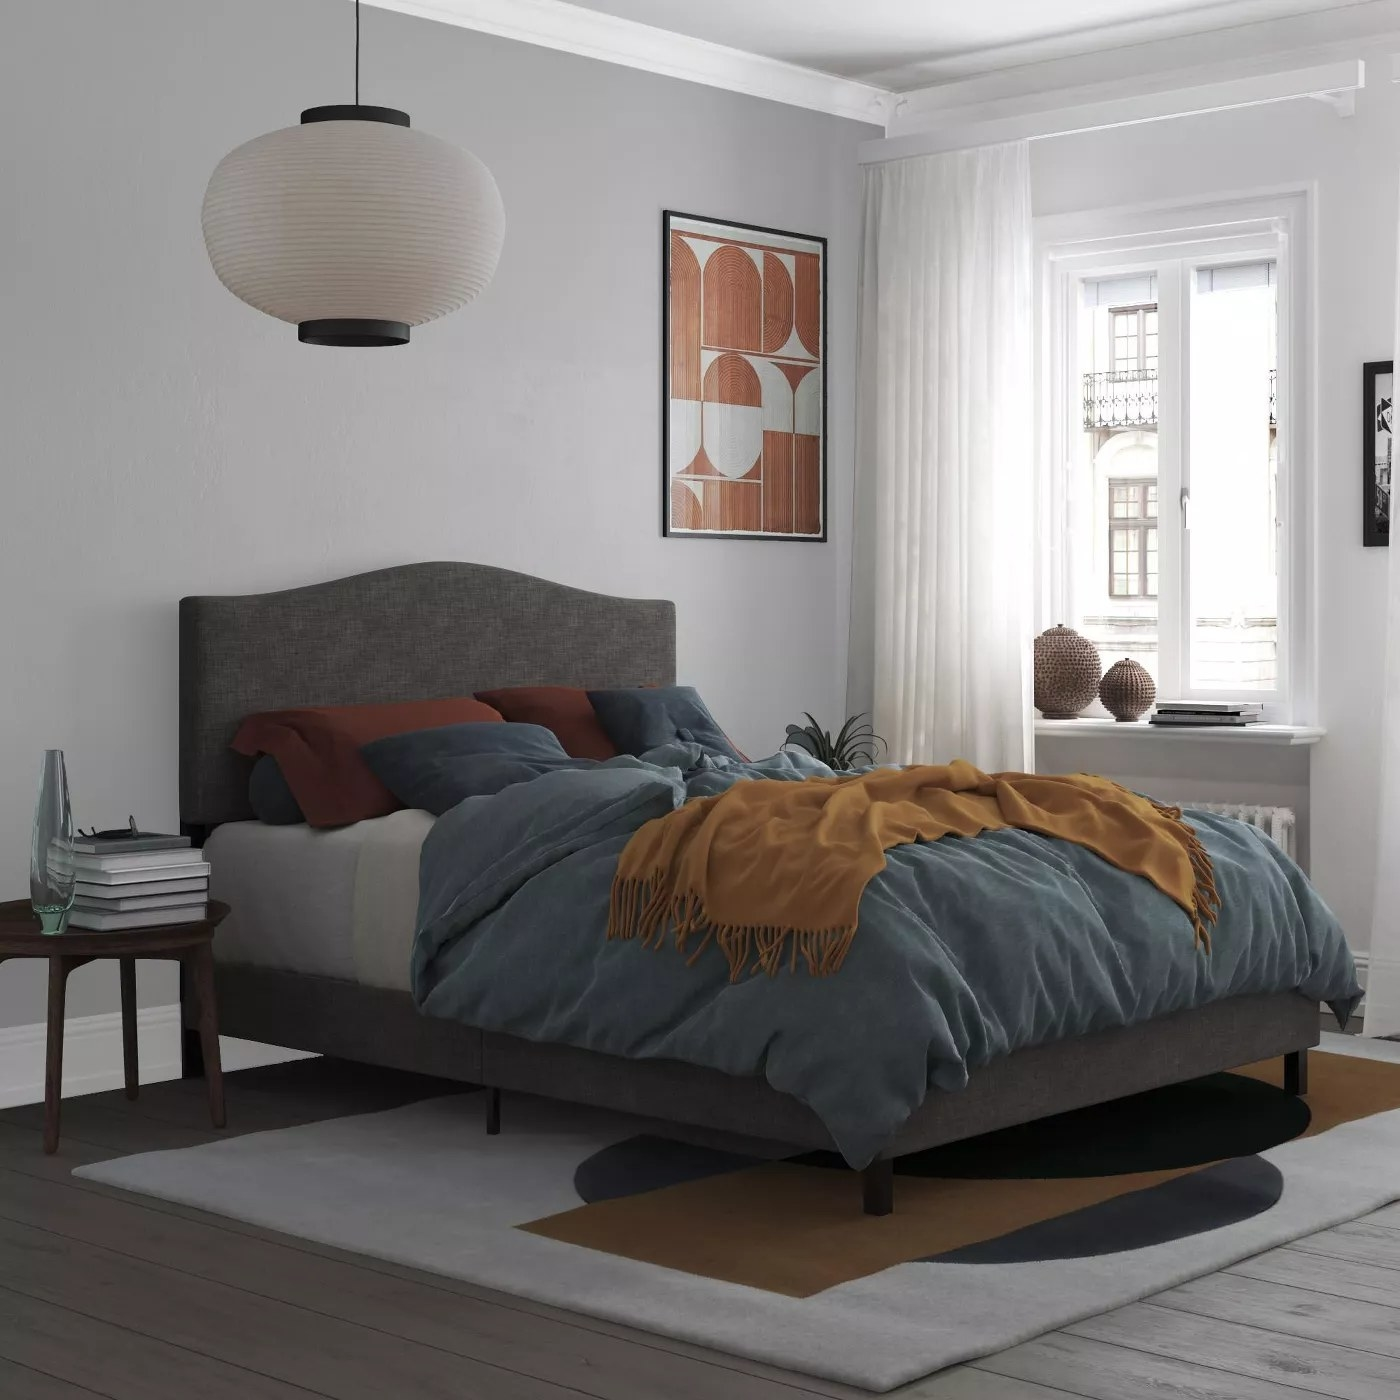 The gray, upholstered bed frame